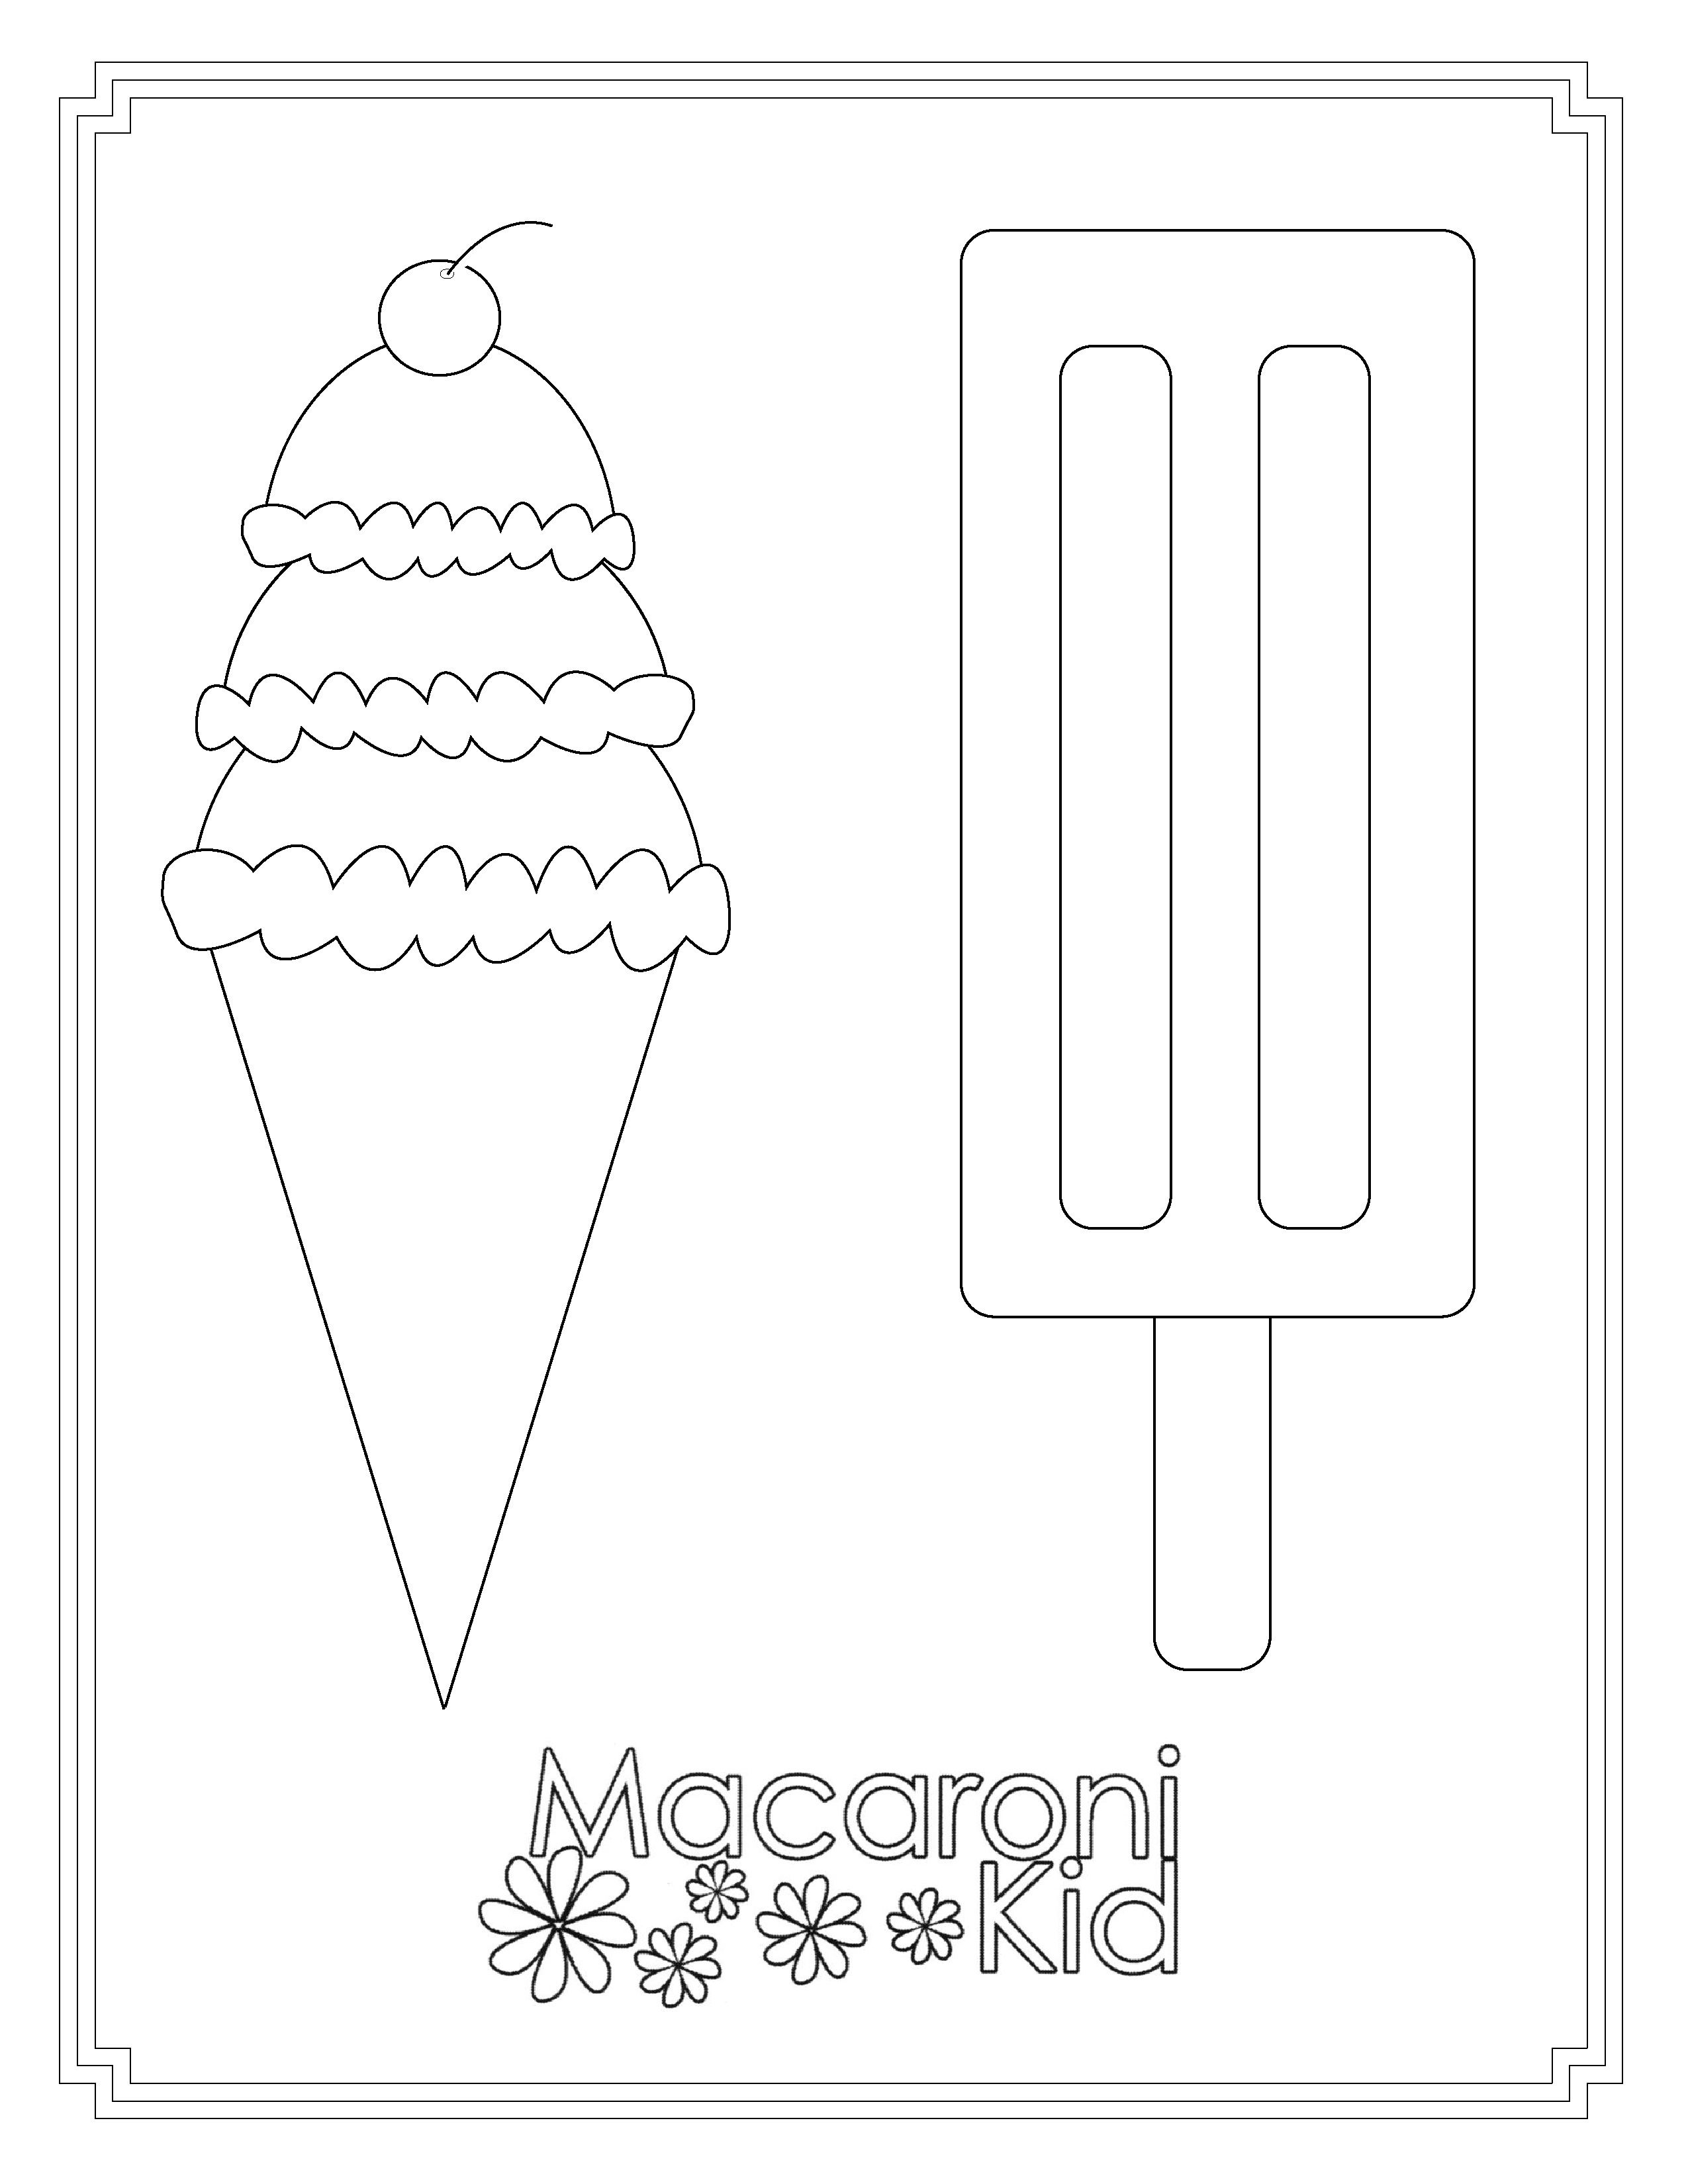 Coloring Page | Macaroni Kid Coloring Pages | Pinterest